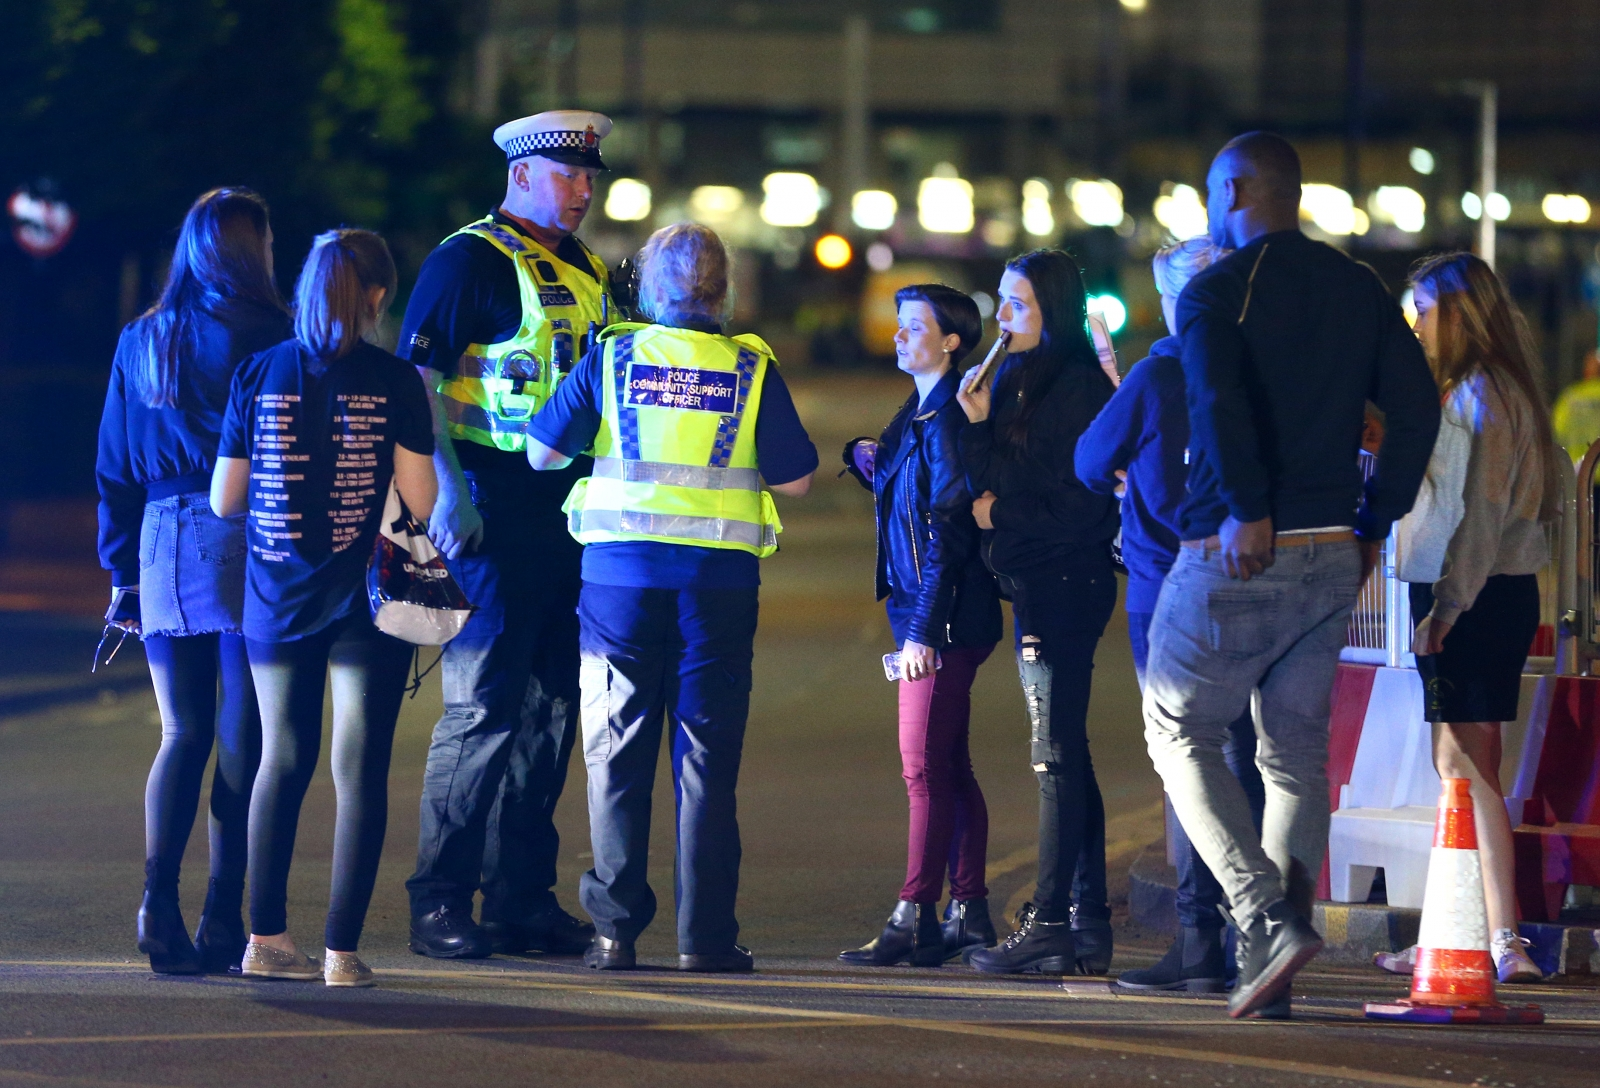 social-media-users-rally-to-help-people-stranded-after-manchester-attack